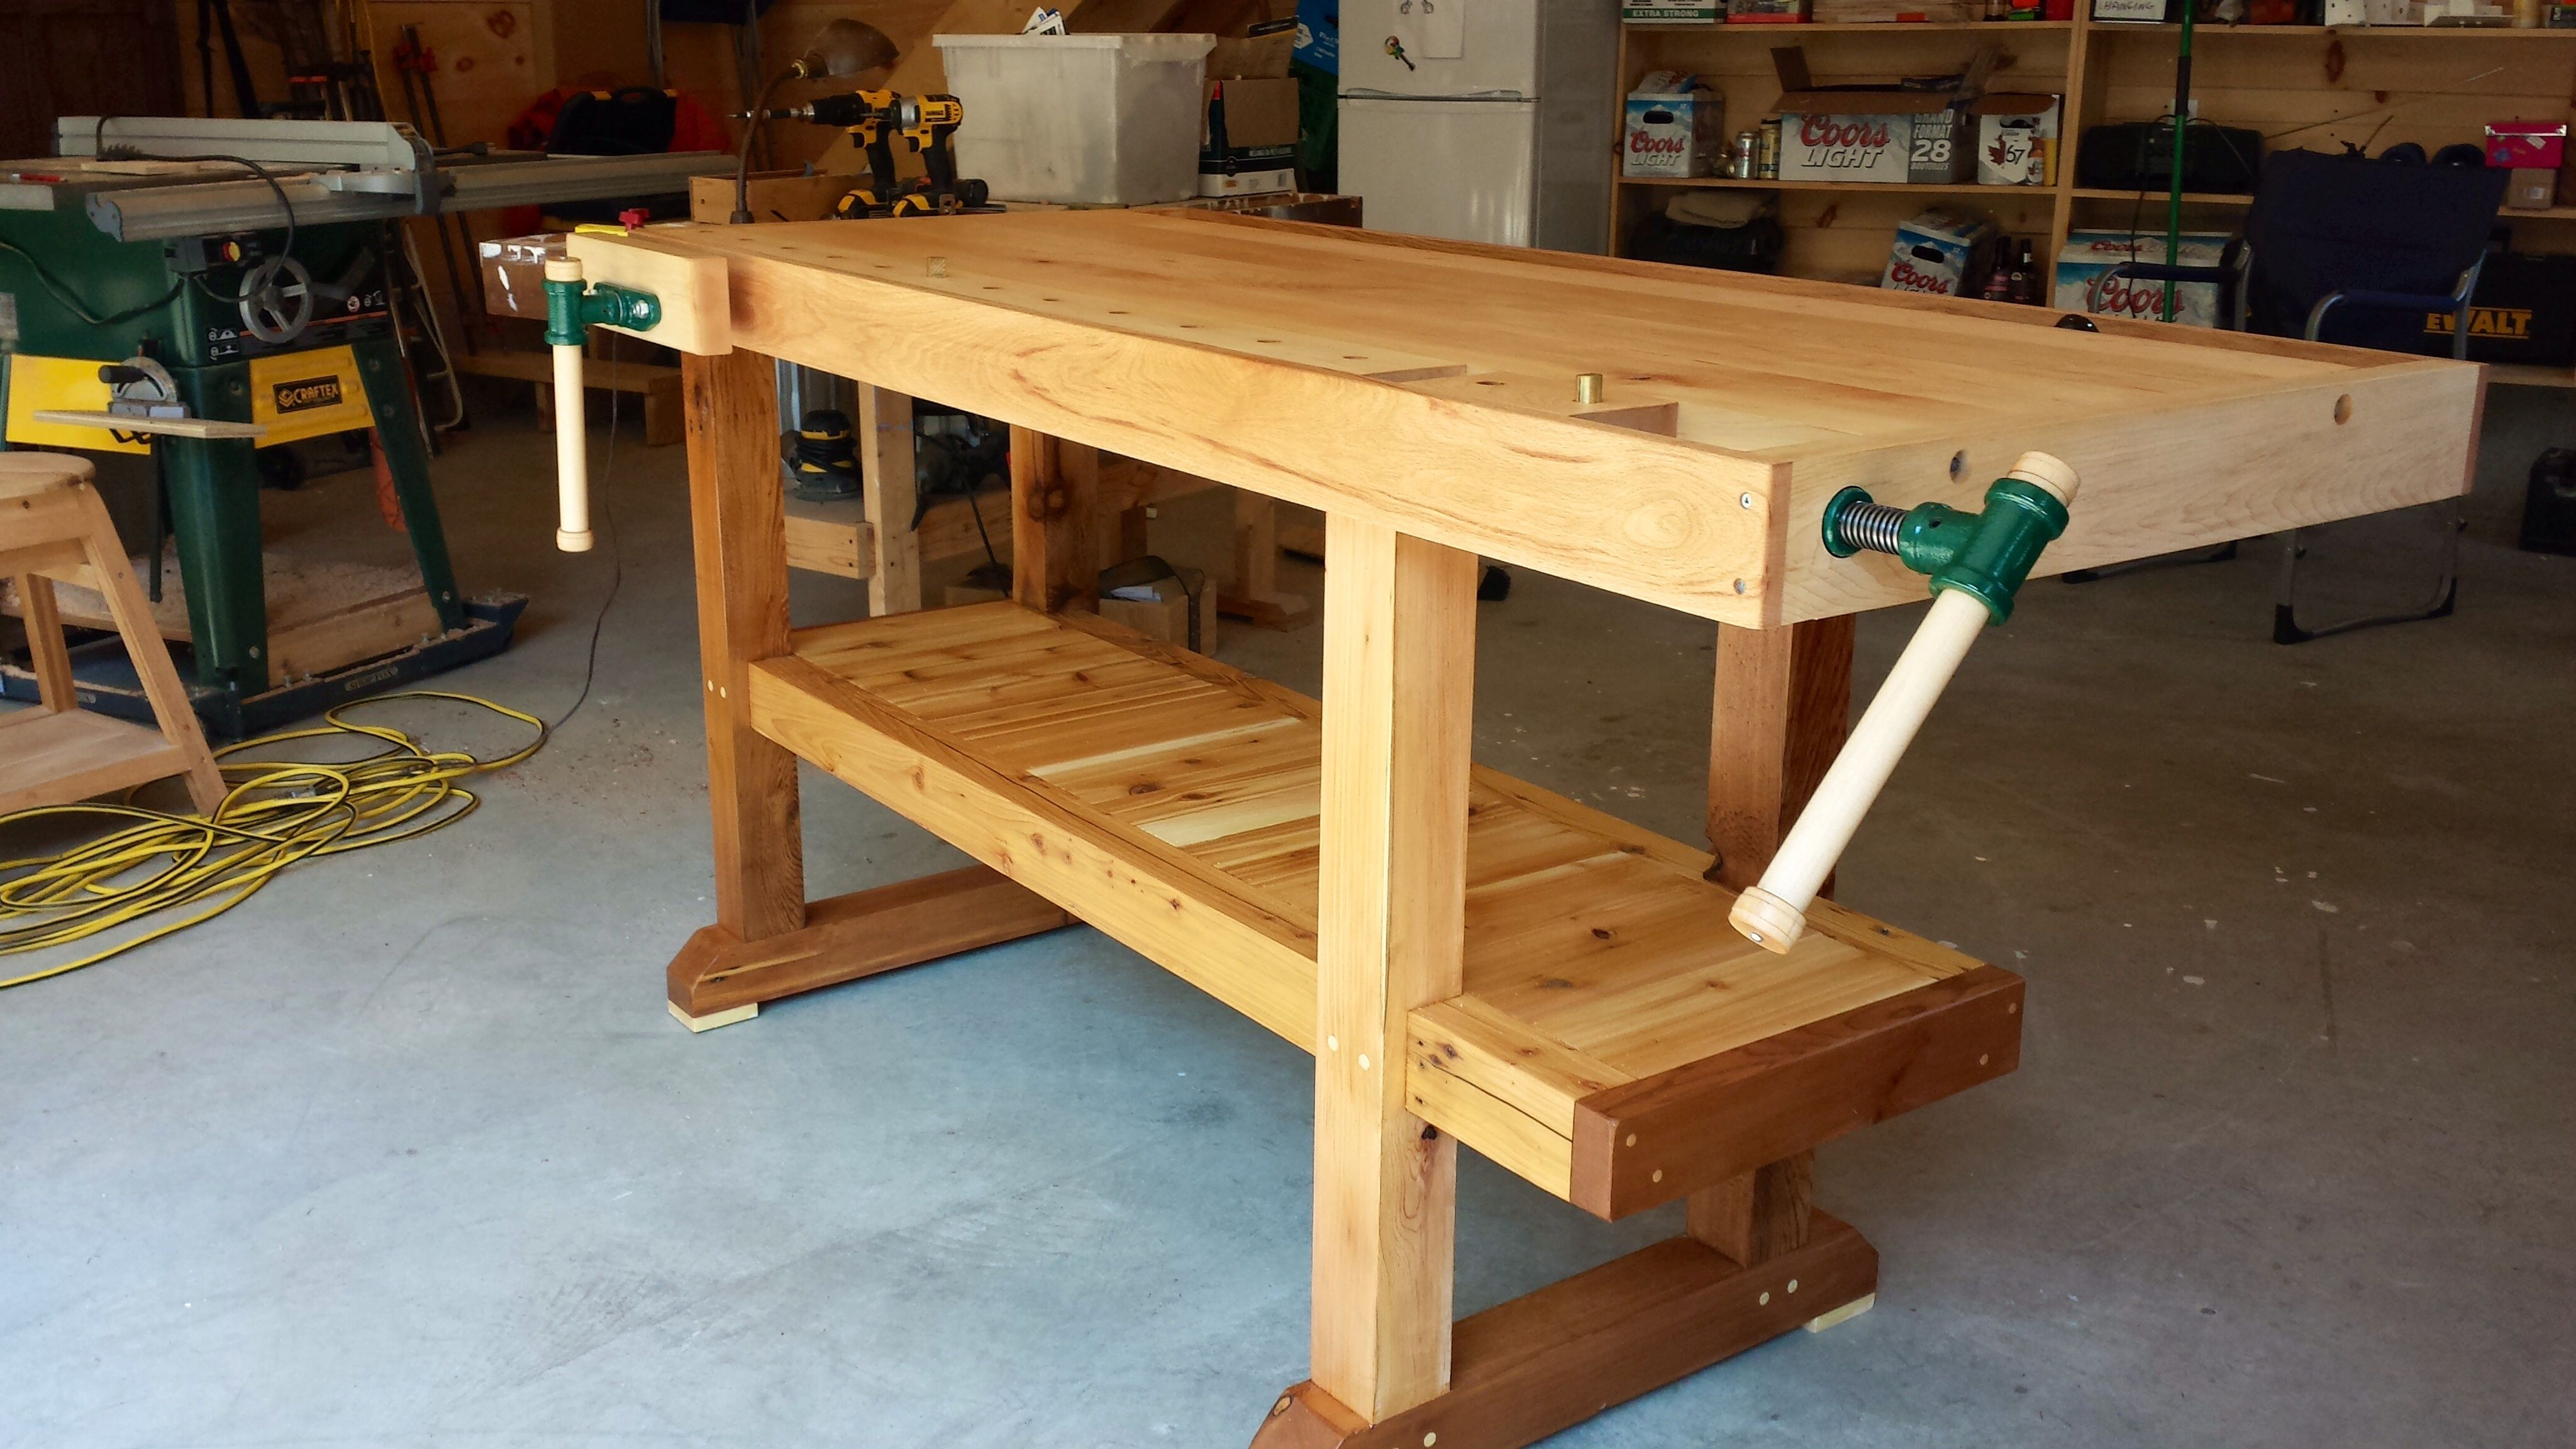 Astounding Workbench Cabinet Makers Bench Just Finished Hard Maple Gmtry Best Dining Table And Chair Ideas Images Gmtryco